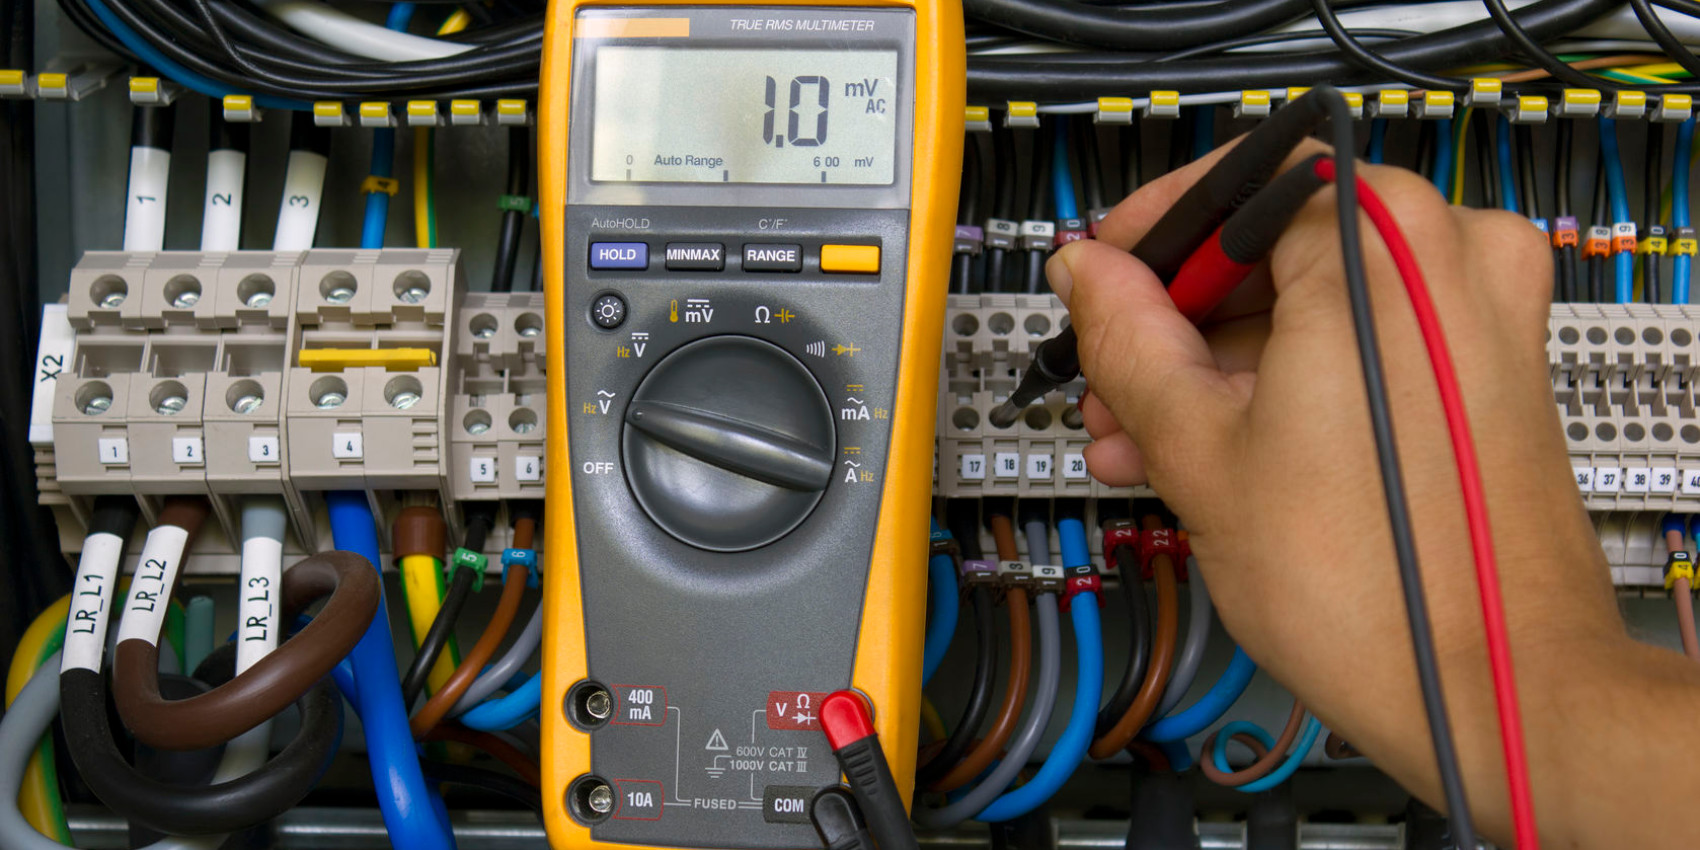 Boat Electricals Marine Electrical Equipment Parts And 6 Way Switch Circuit Breaker Panel Installation Repair Service Available From Qualified Technicians